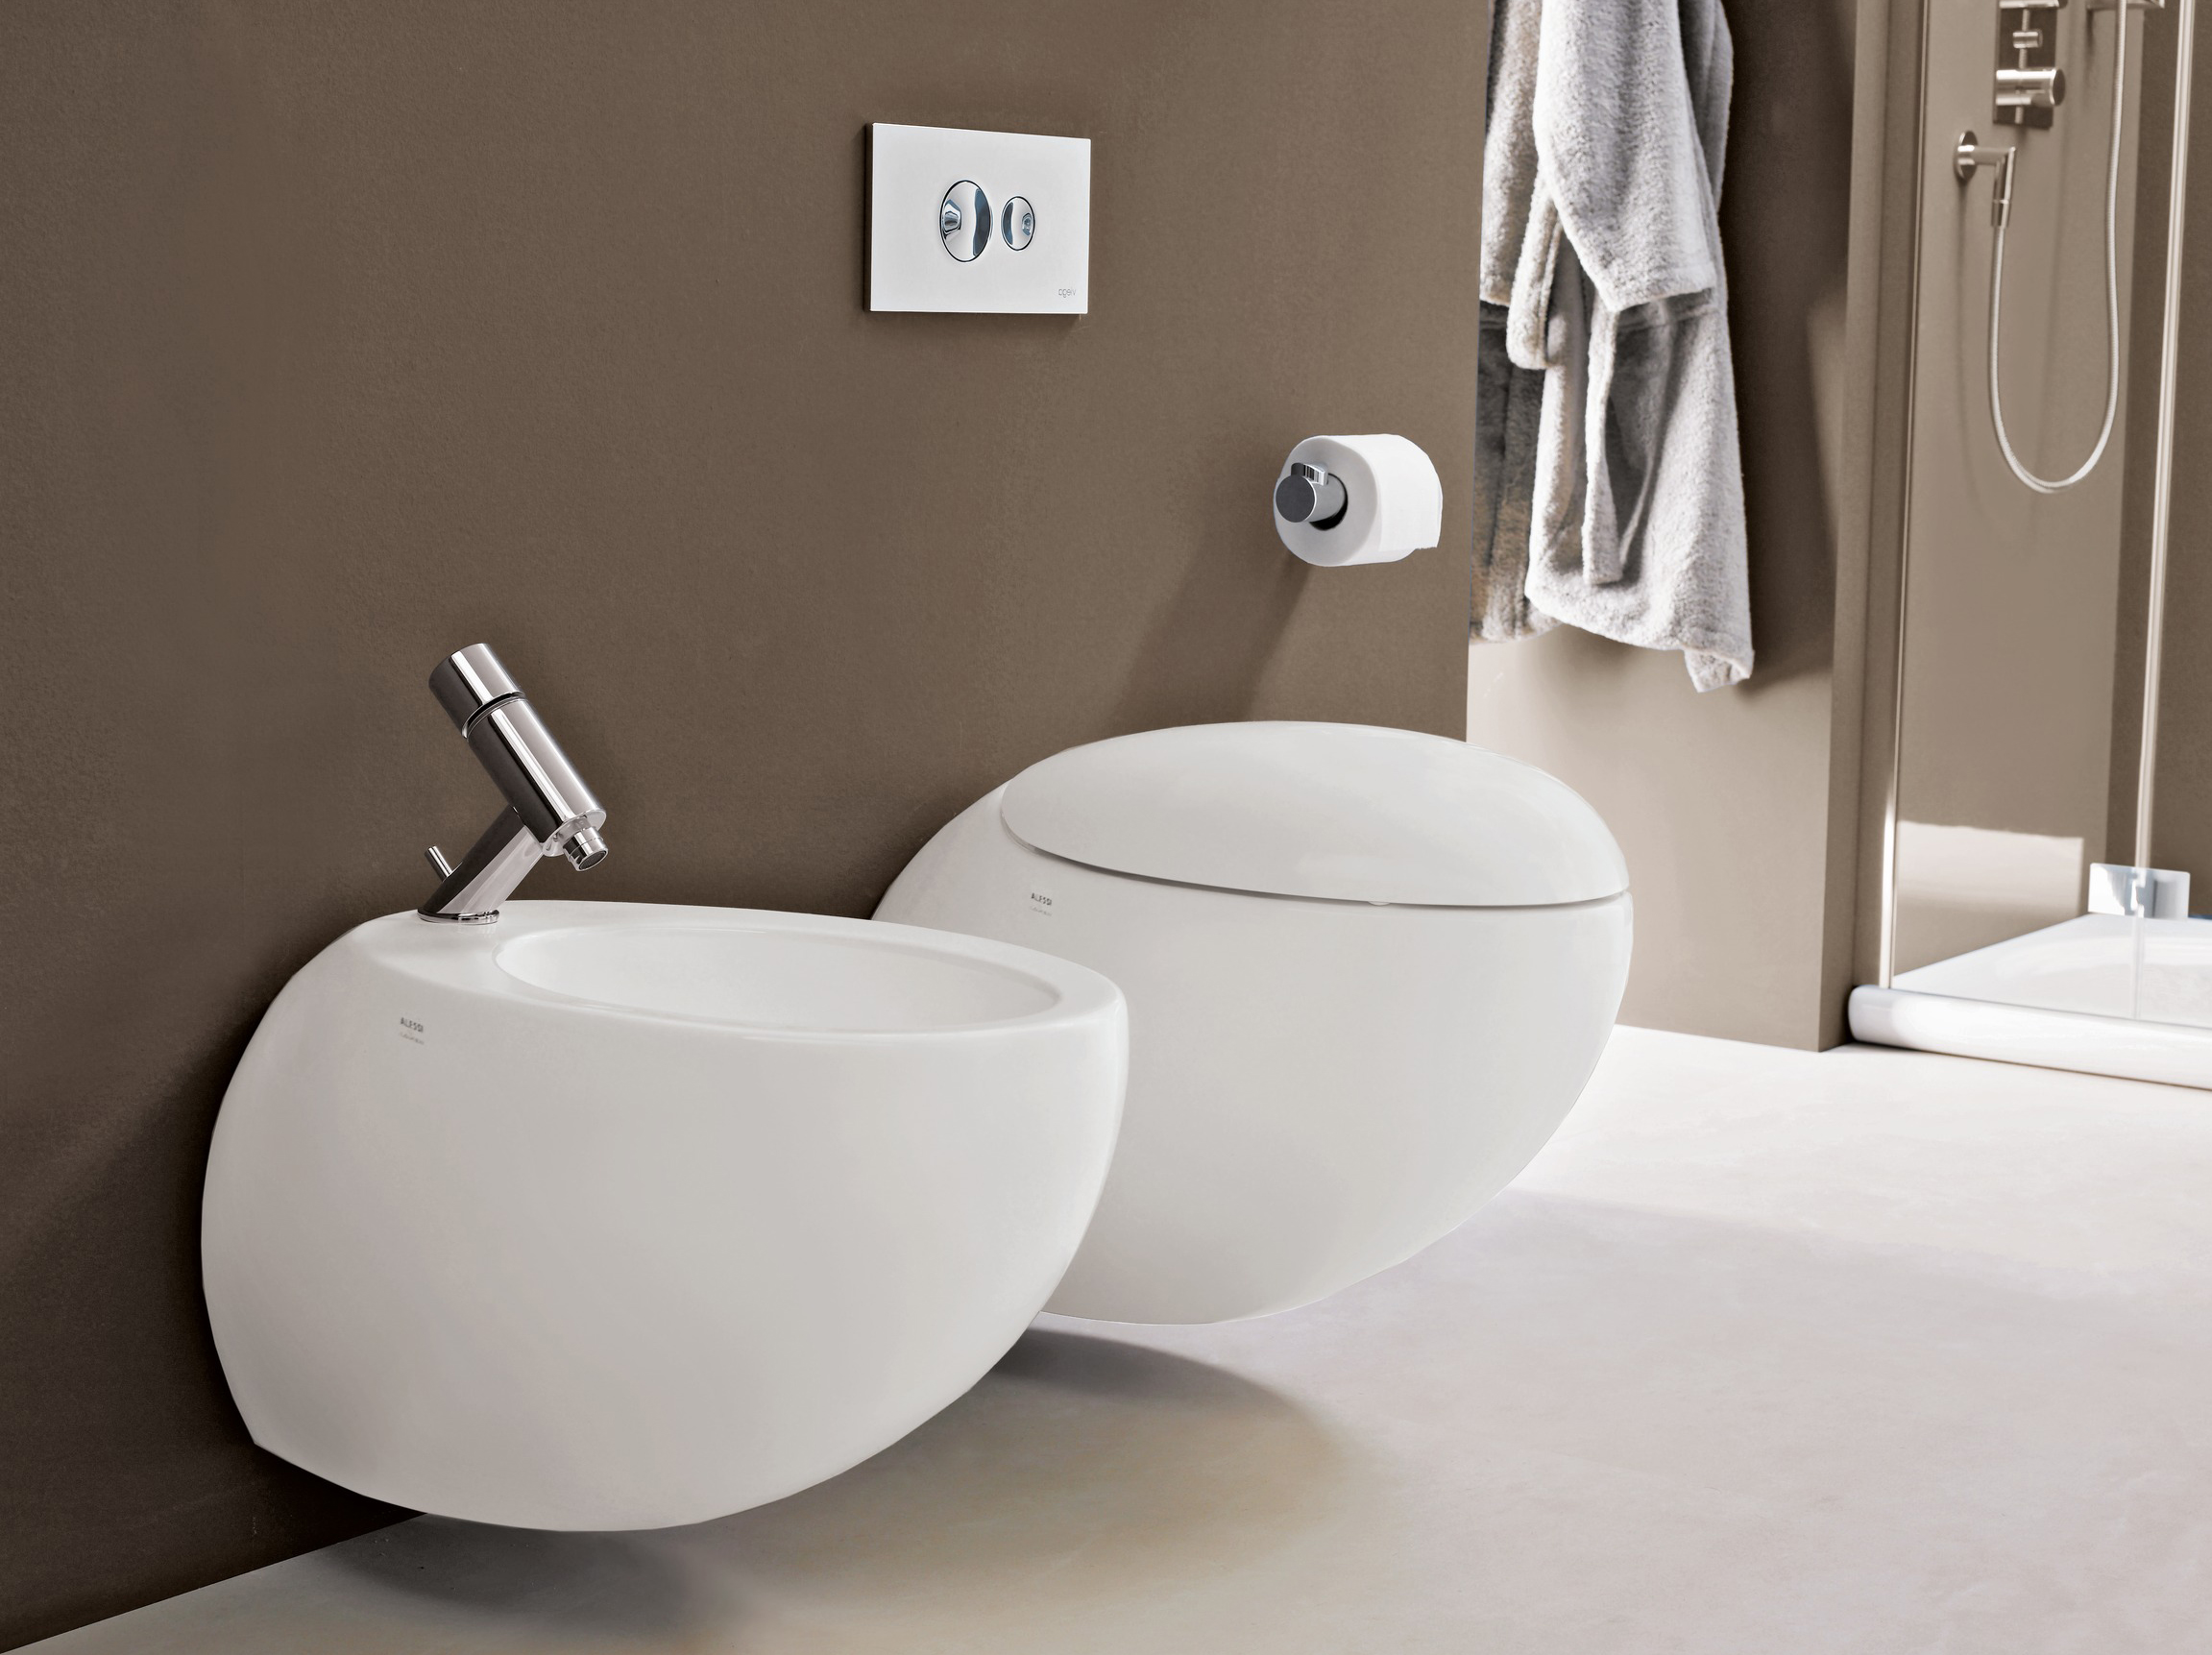 http://townandcountrybathrooms.ie/wp-content/uploads/2018/02/IL-bagno-alessi-one.-Toilet-and-bidet.Laufen-2.jpeg